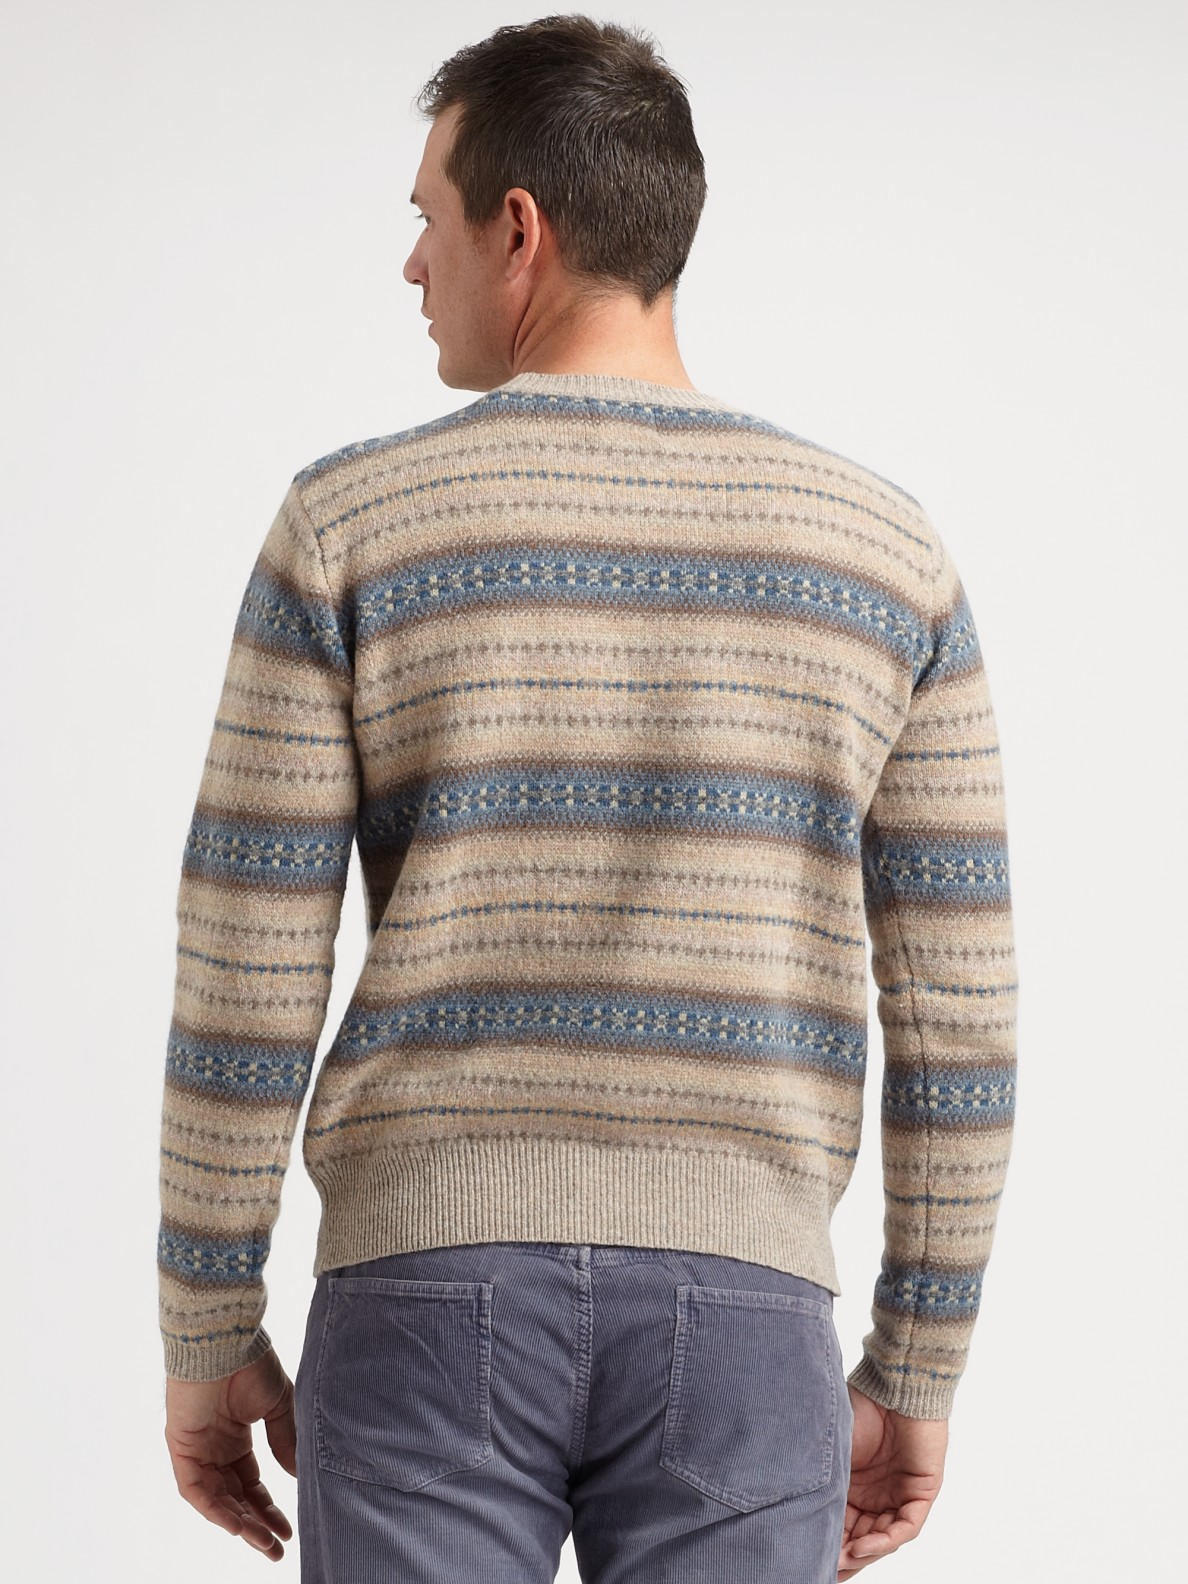 Gant rugger Fair Isle Sweater in Brown for Men | Lyst